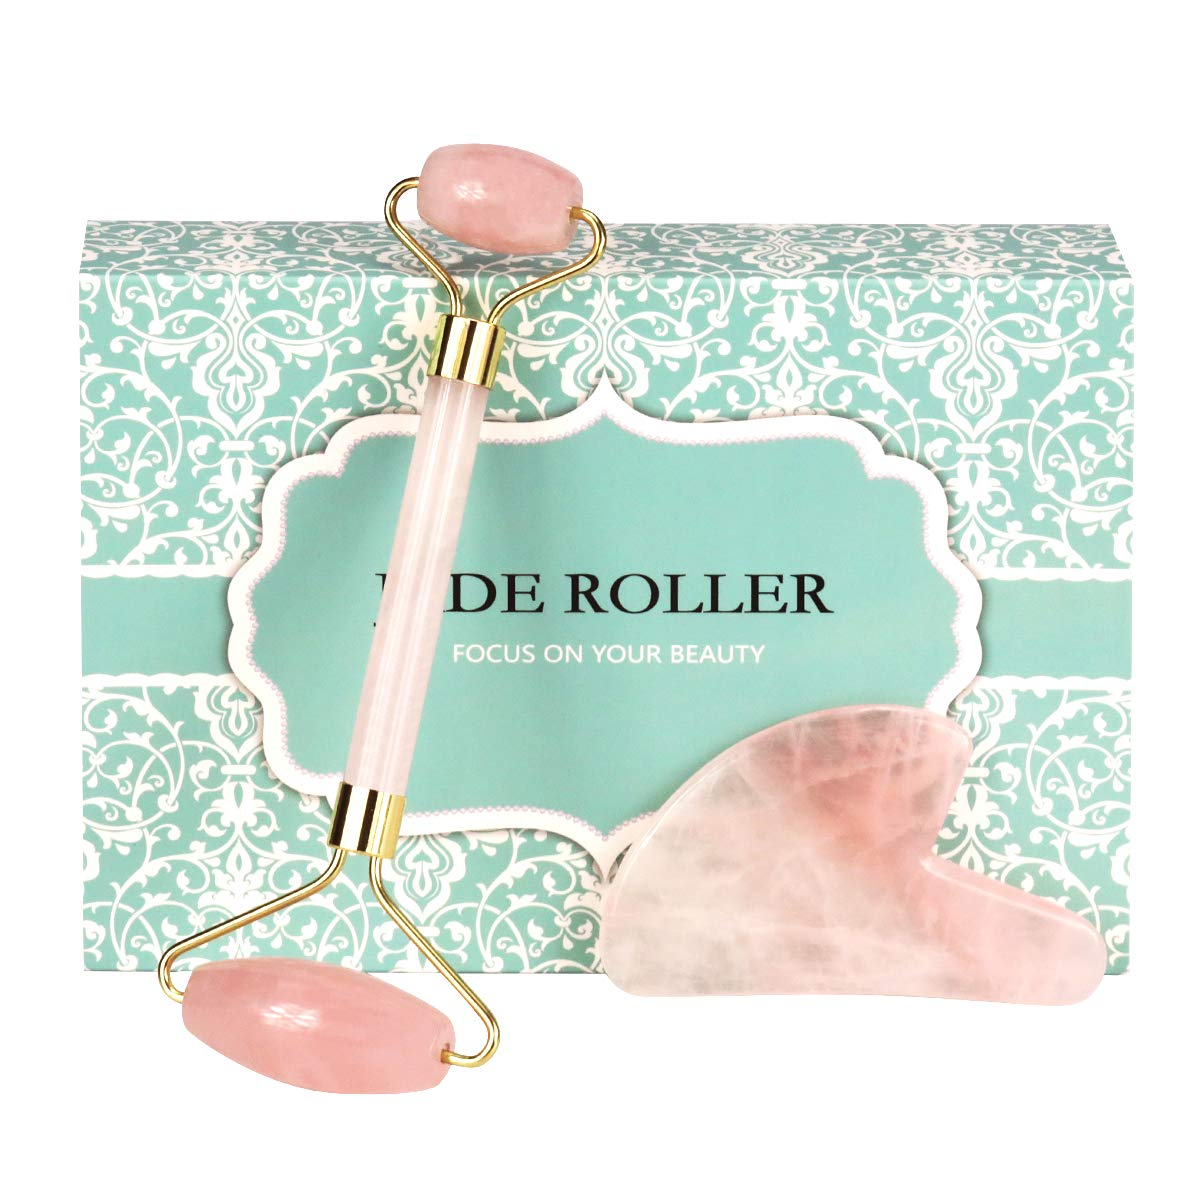 Jade Rose Quartz Roller for Face 2 in 1 Gua Sha Set Including Rose Quartz Roller and Jade Face Massager 100% Real Natural Jade Facial Roller Anti Aging Face Roller Massager by OMO by Rayfarmo